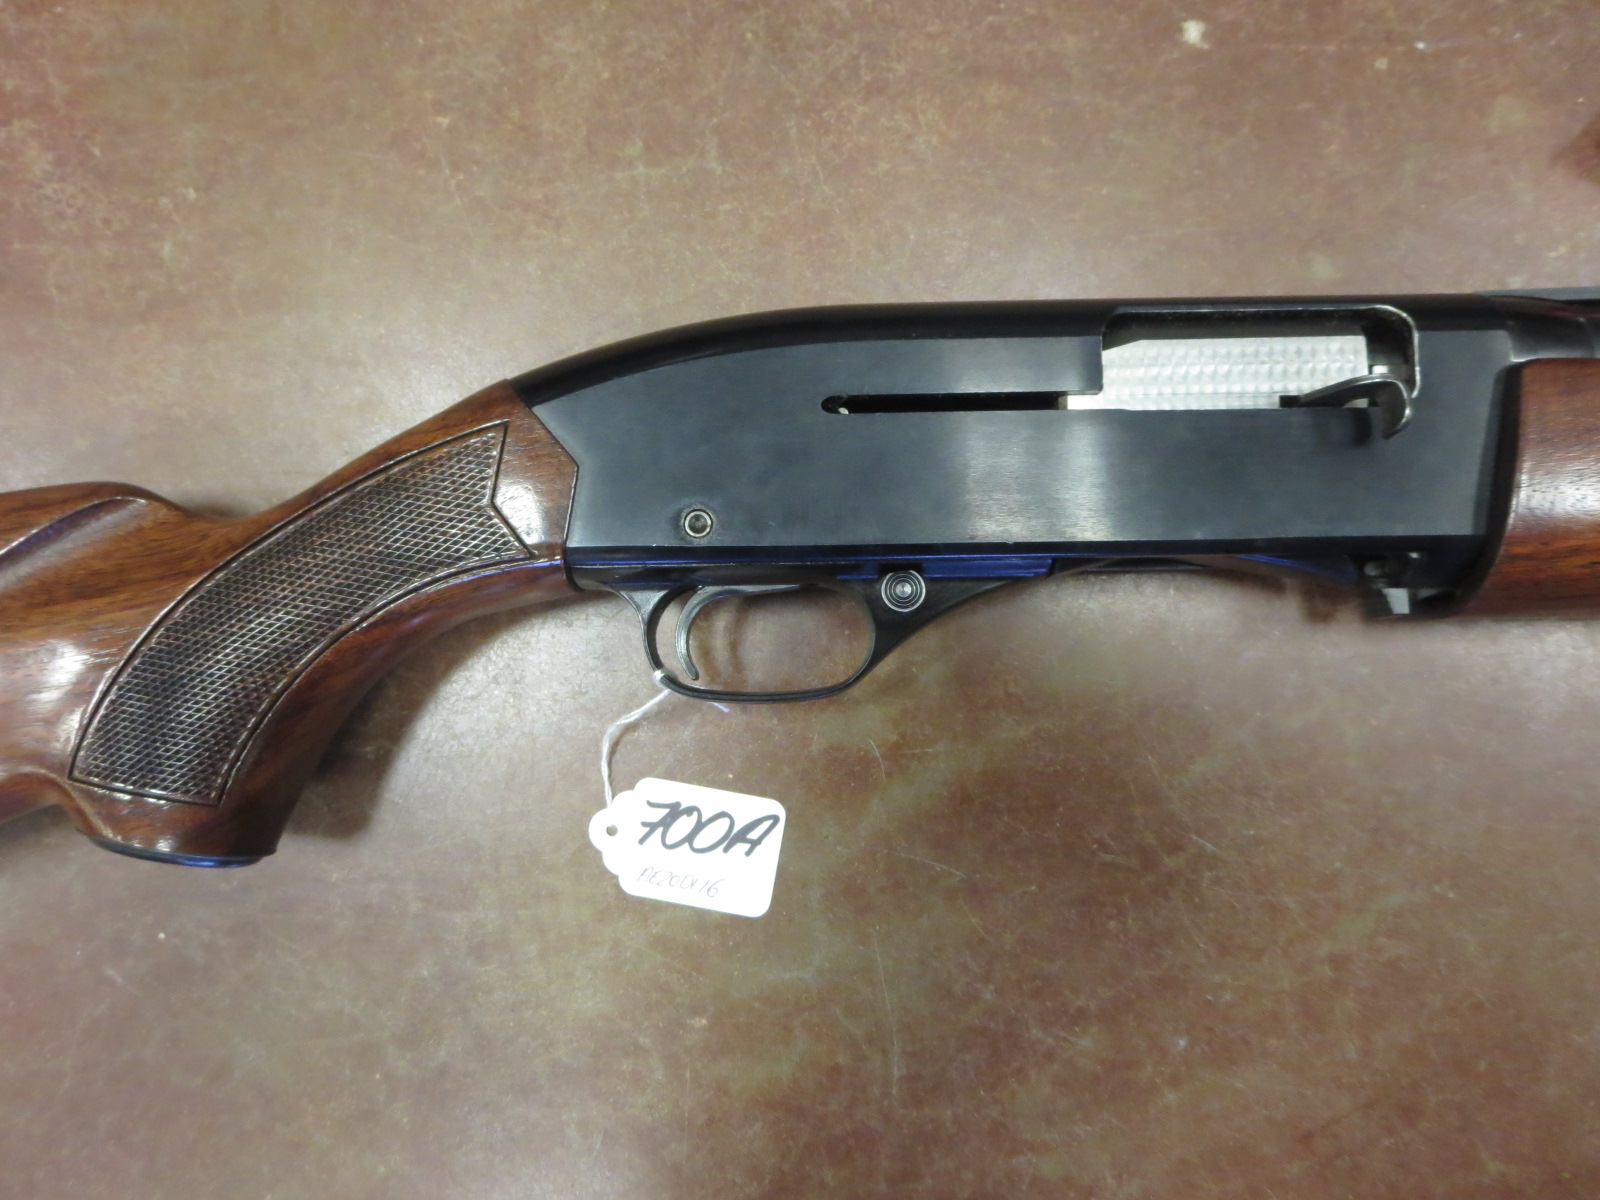 A Winchester 1400 Mark II semi-automatic 12 bore 3-shot shotgun 2 3